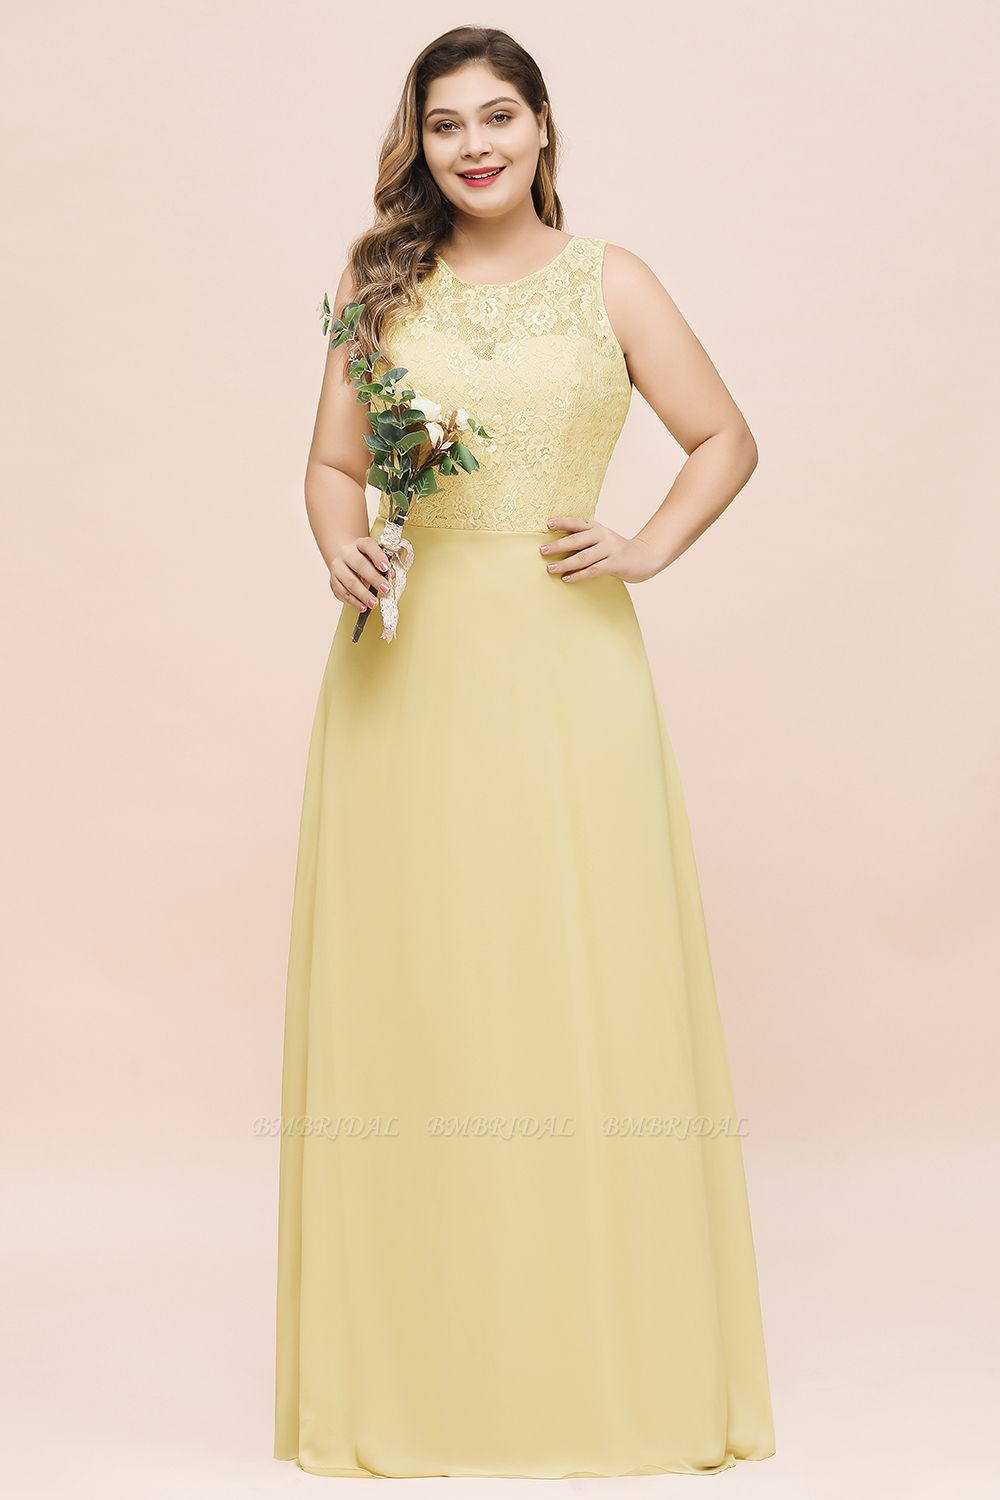 BMbridal Plus Size Lace Sleeveless Affordable Daffodil Bridesmaid Dress